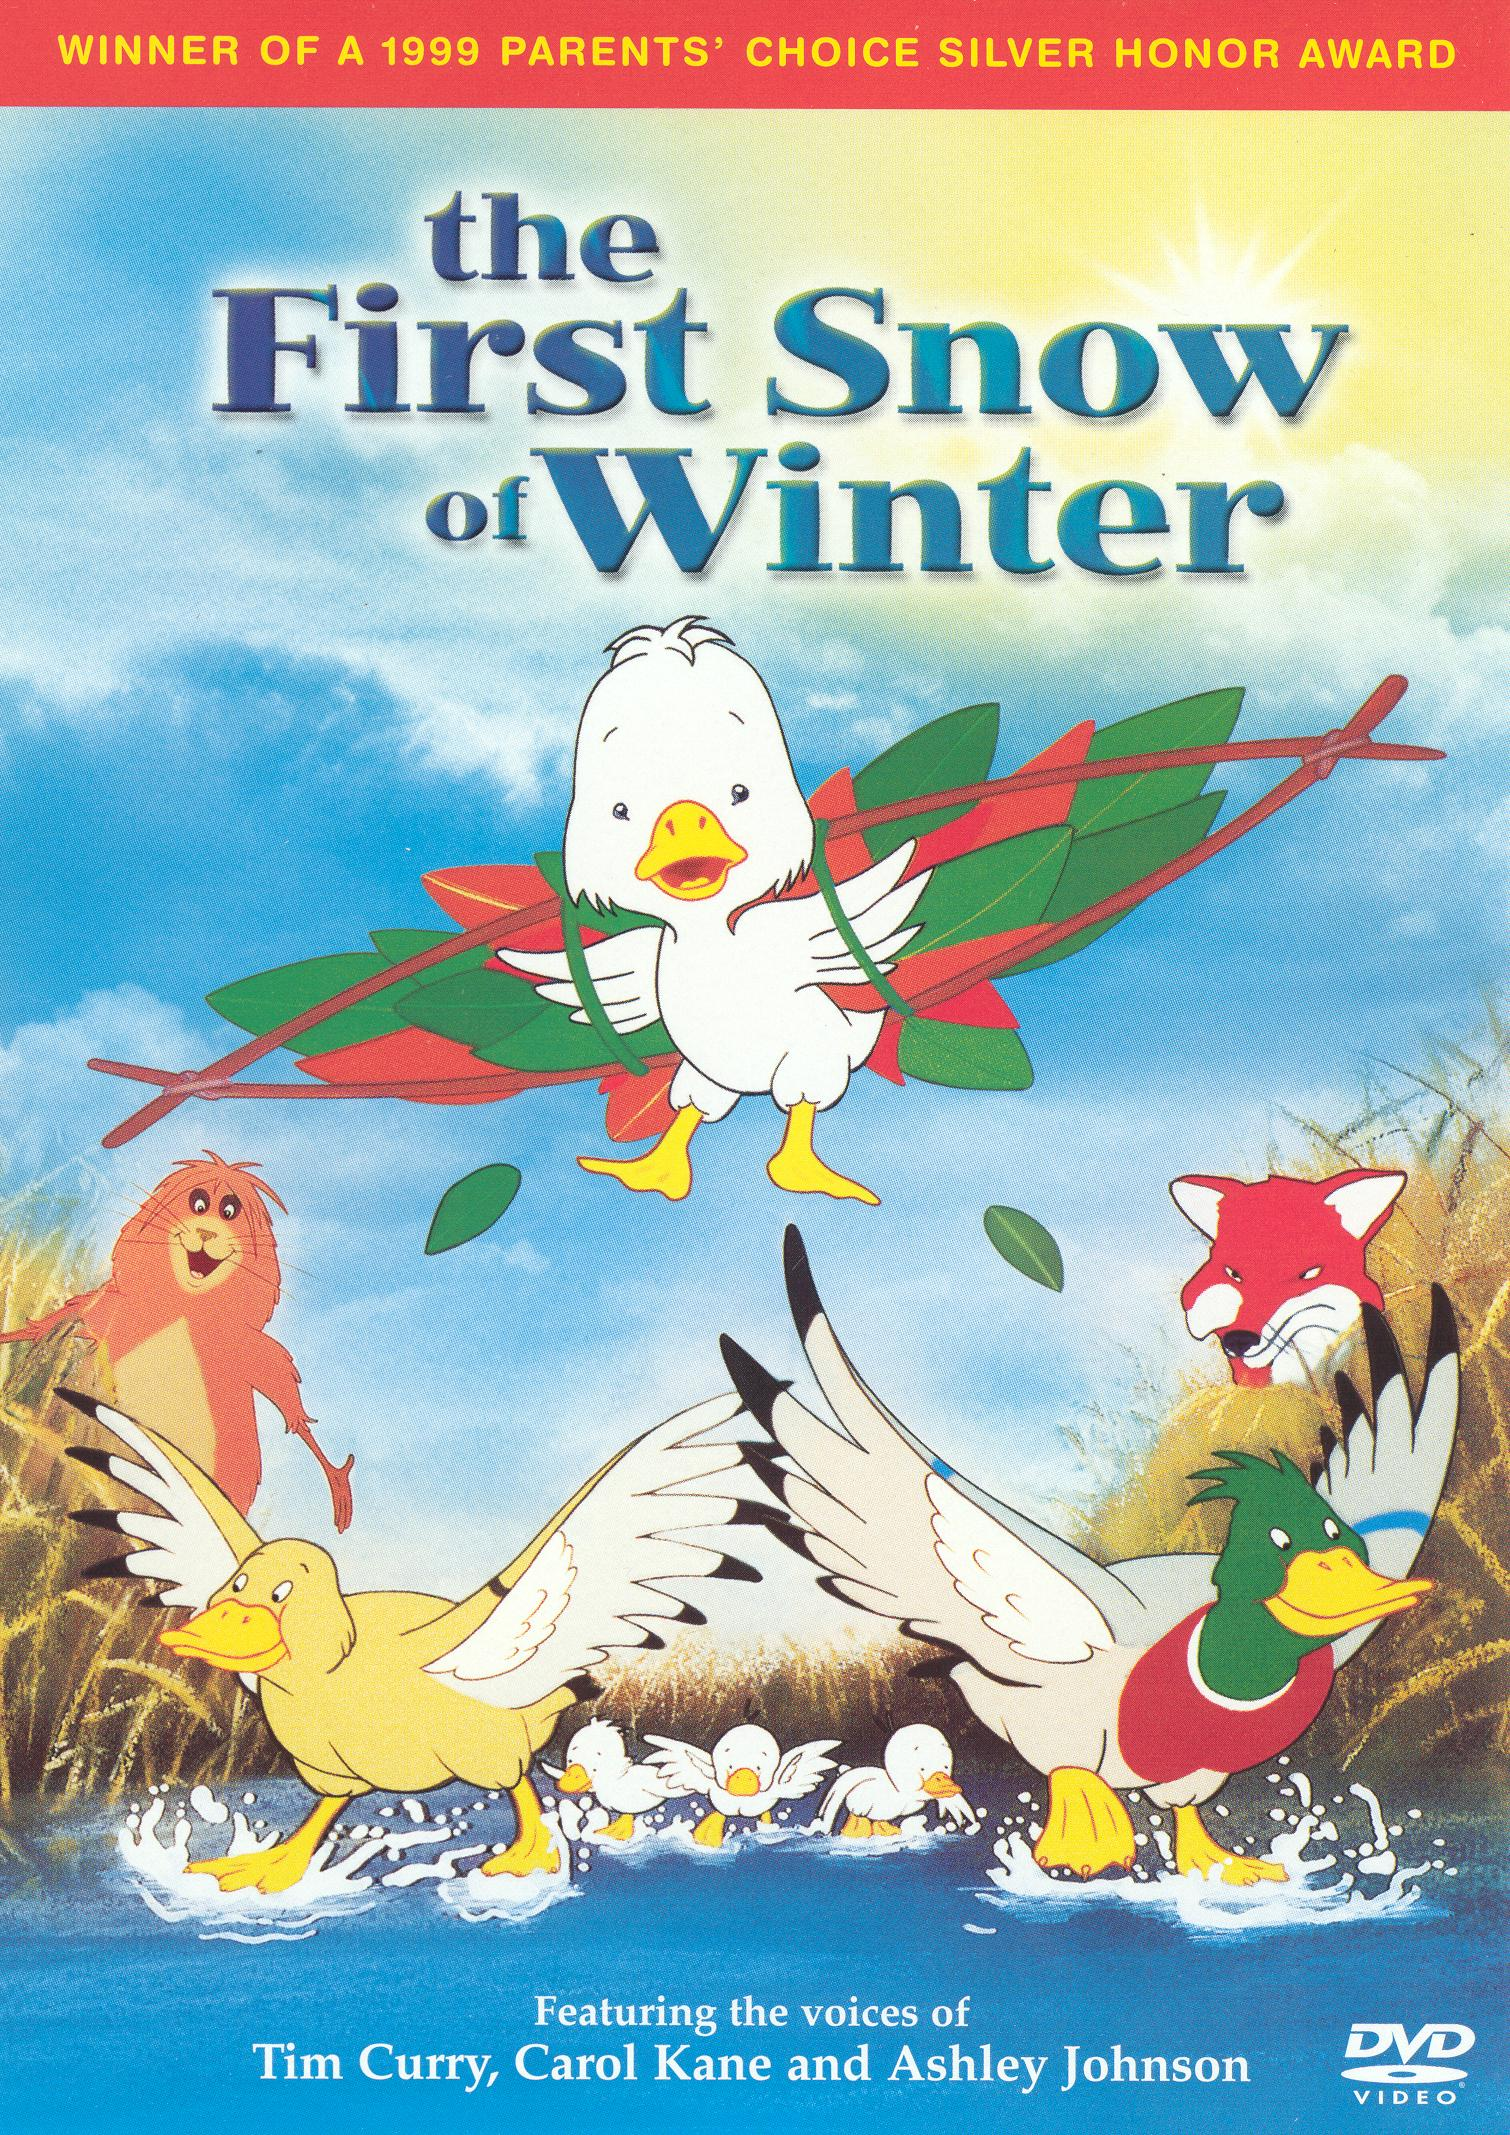 the first snow of winter 1999 graham ralph synopsis